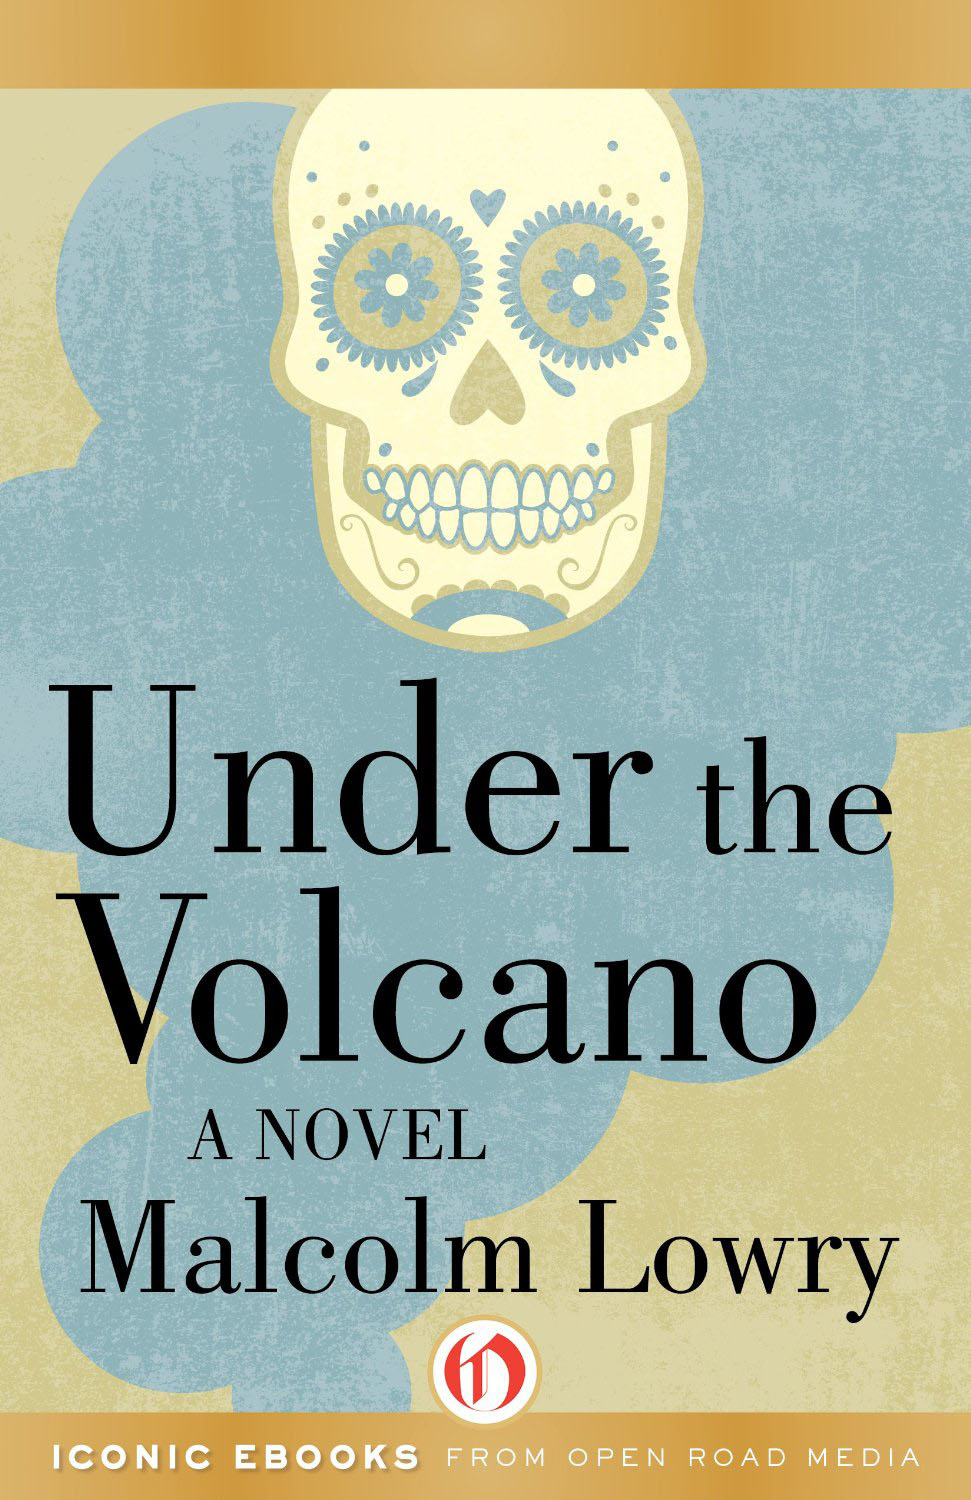 68. Under the Volcano by Malcolm Lowry (1947)